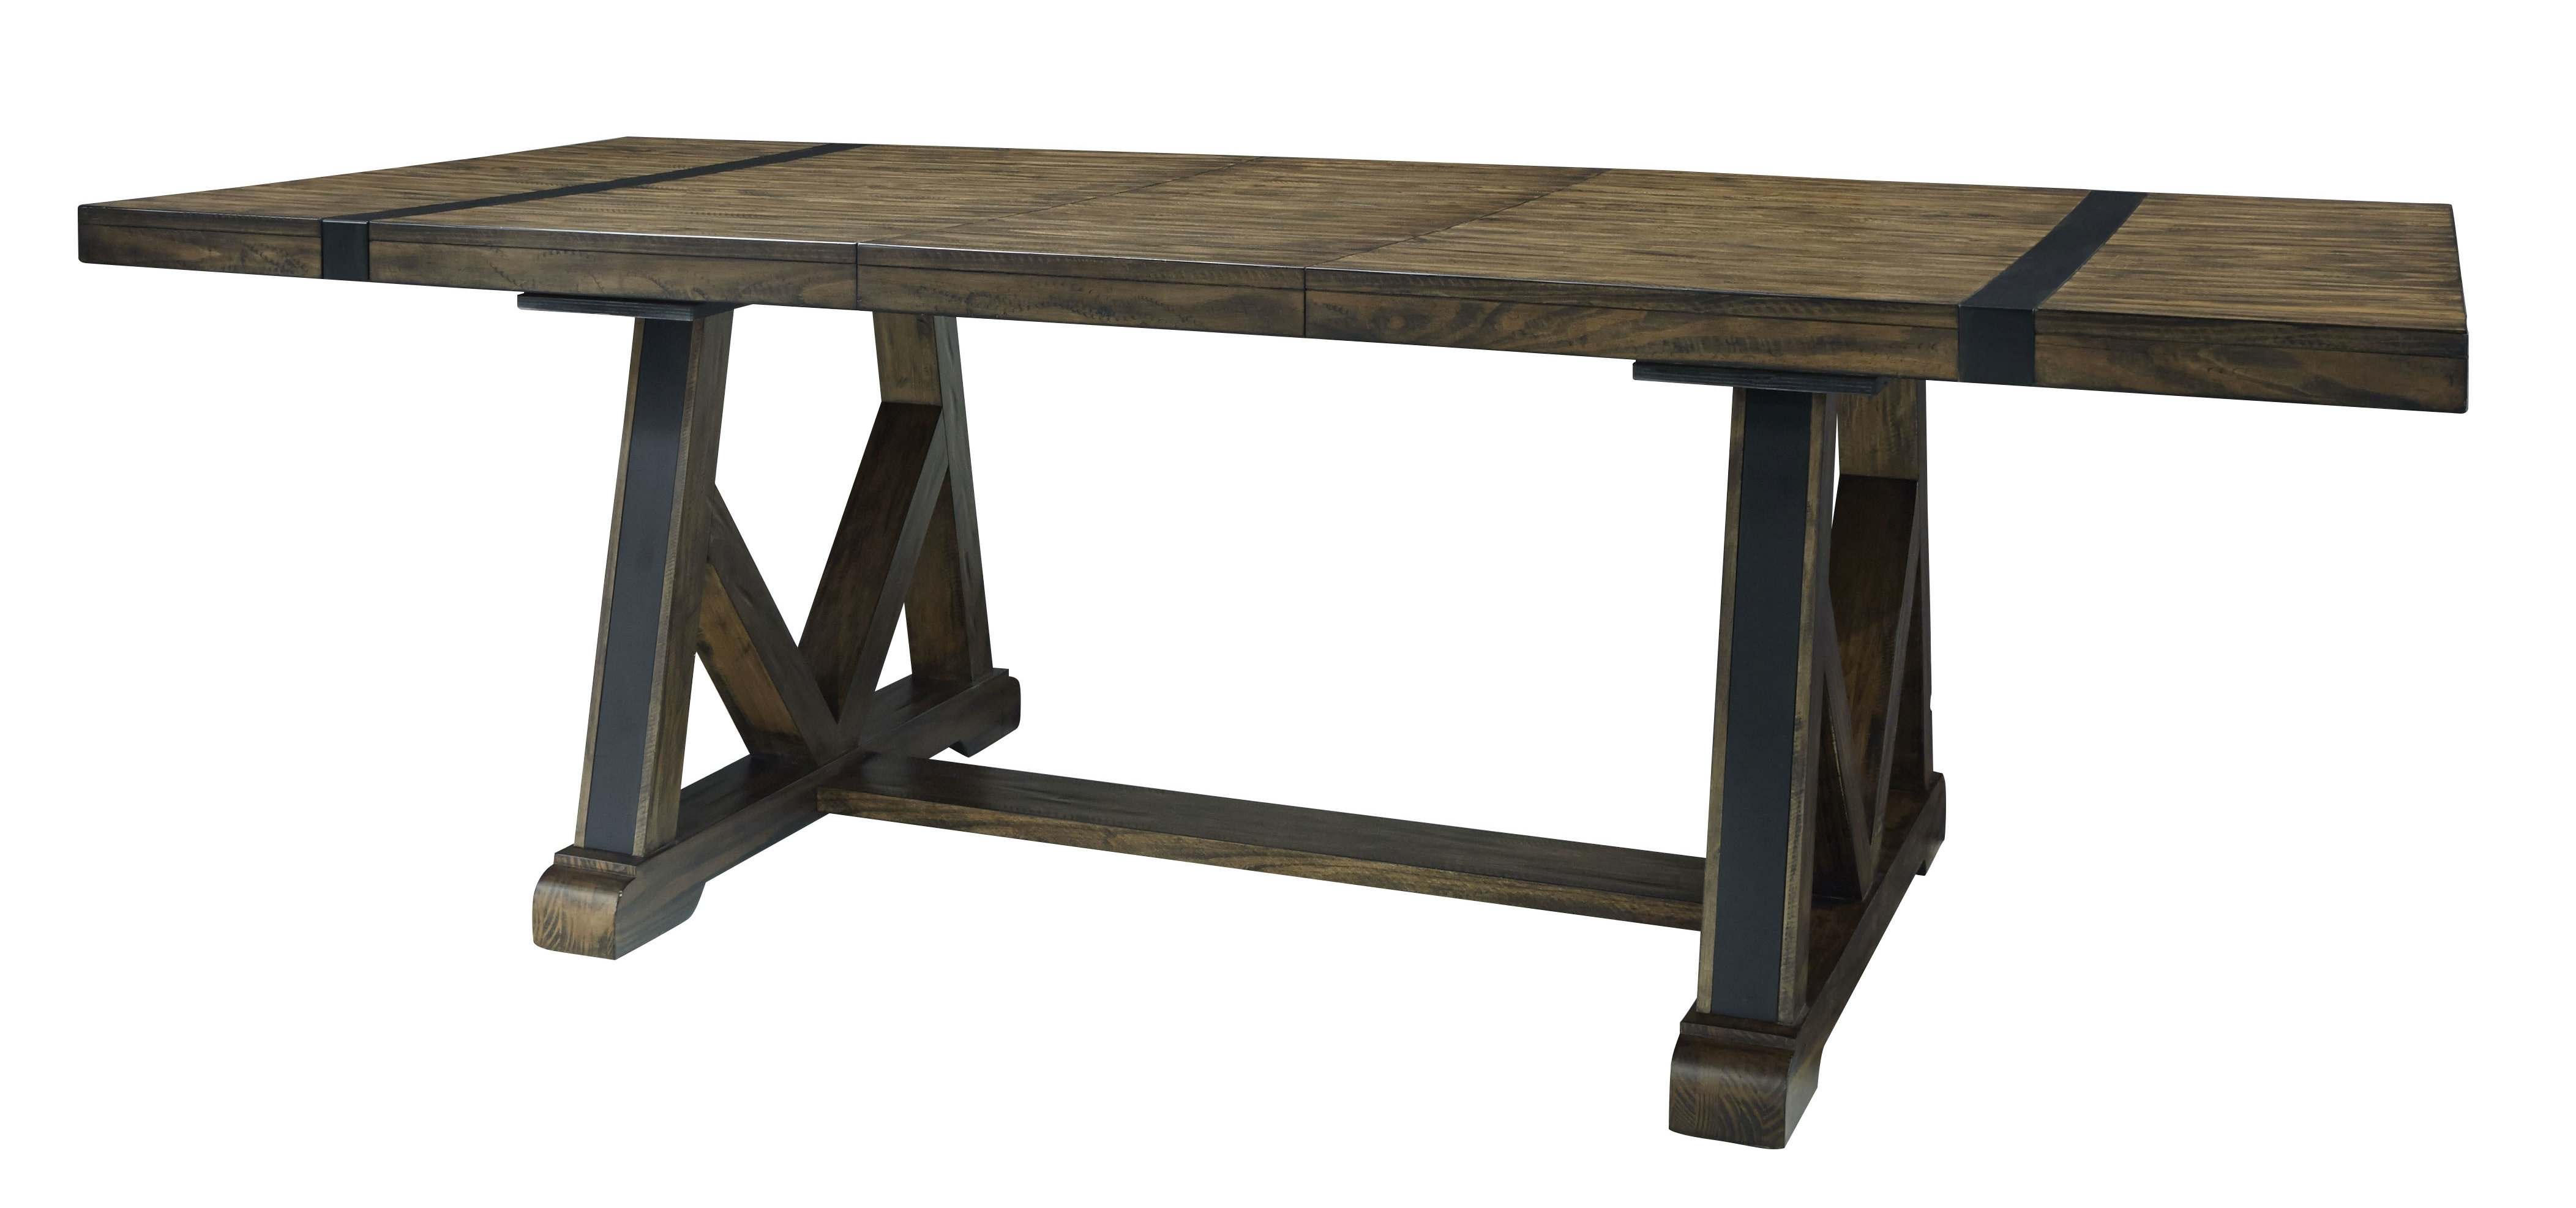 Williston Forge Leandra Trestle Extendable Dining Table (View 25 of 25)